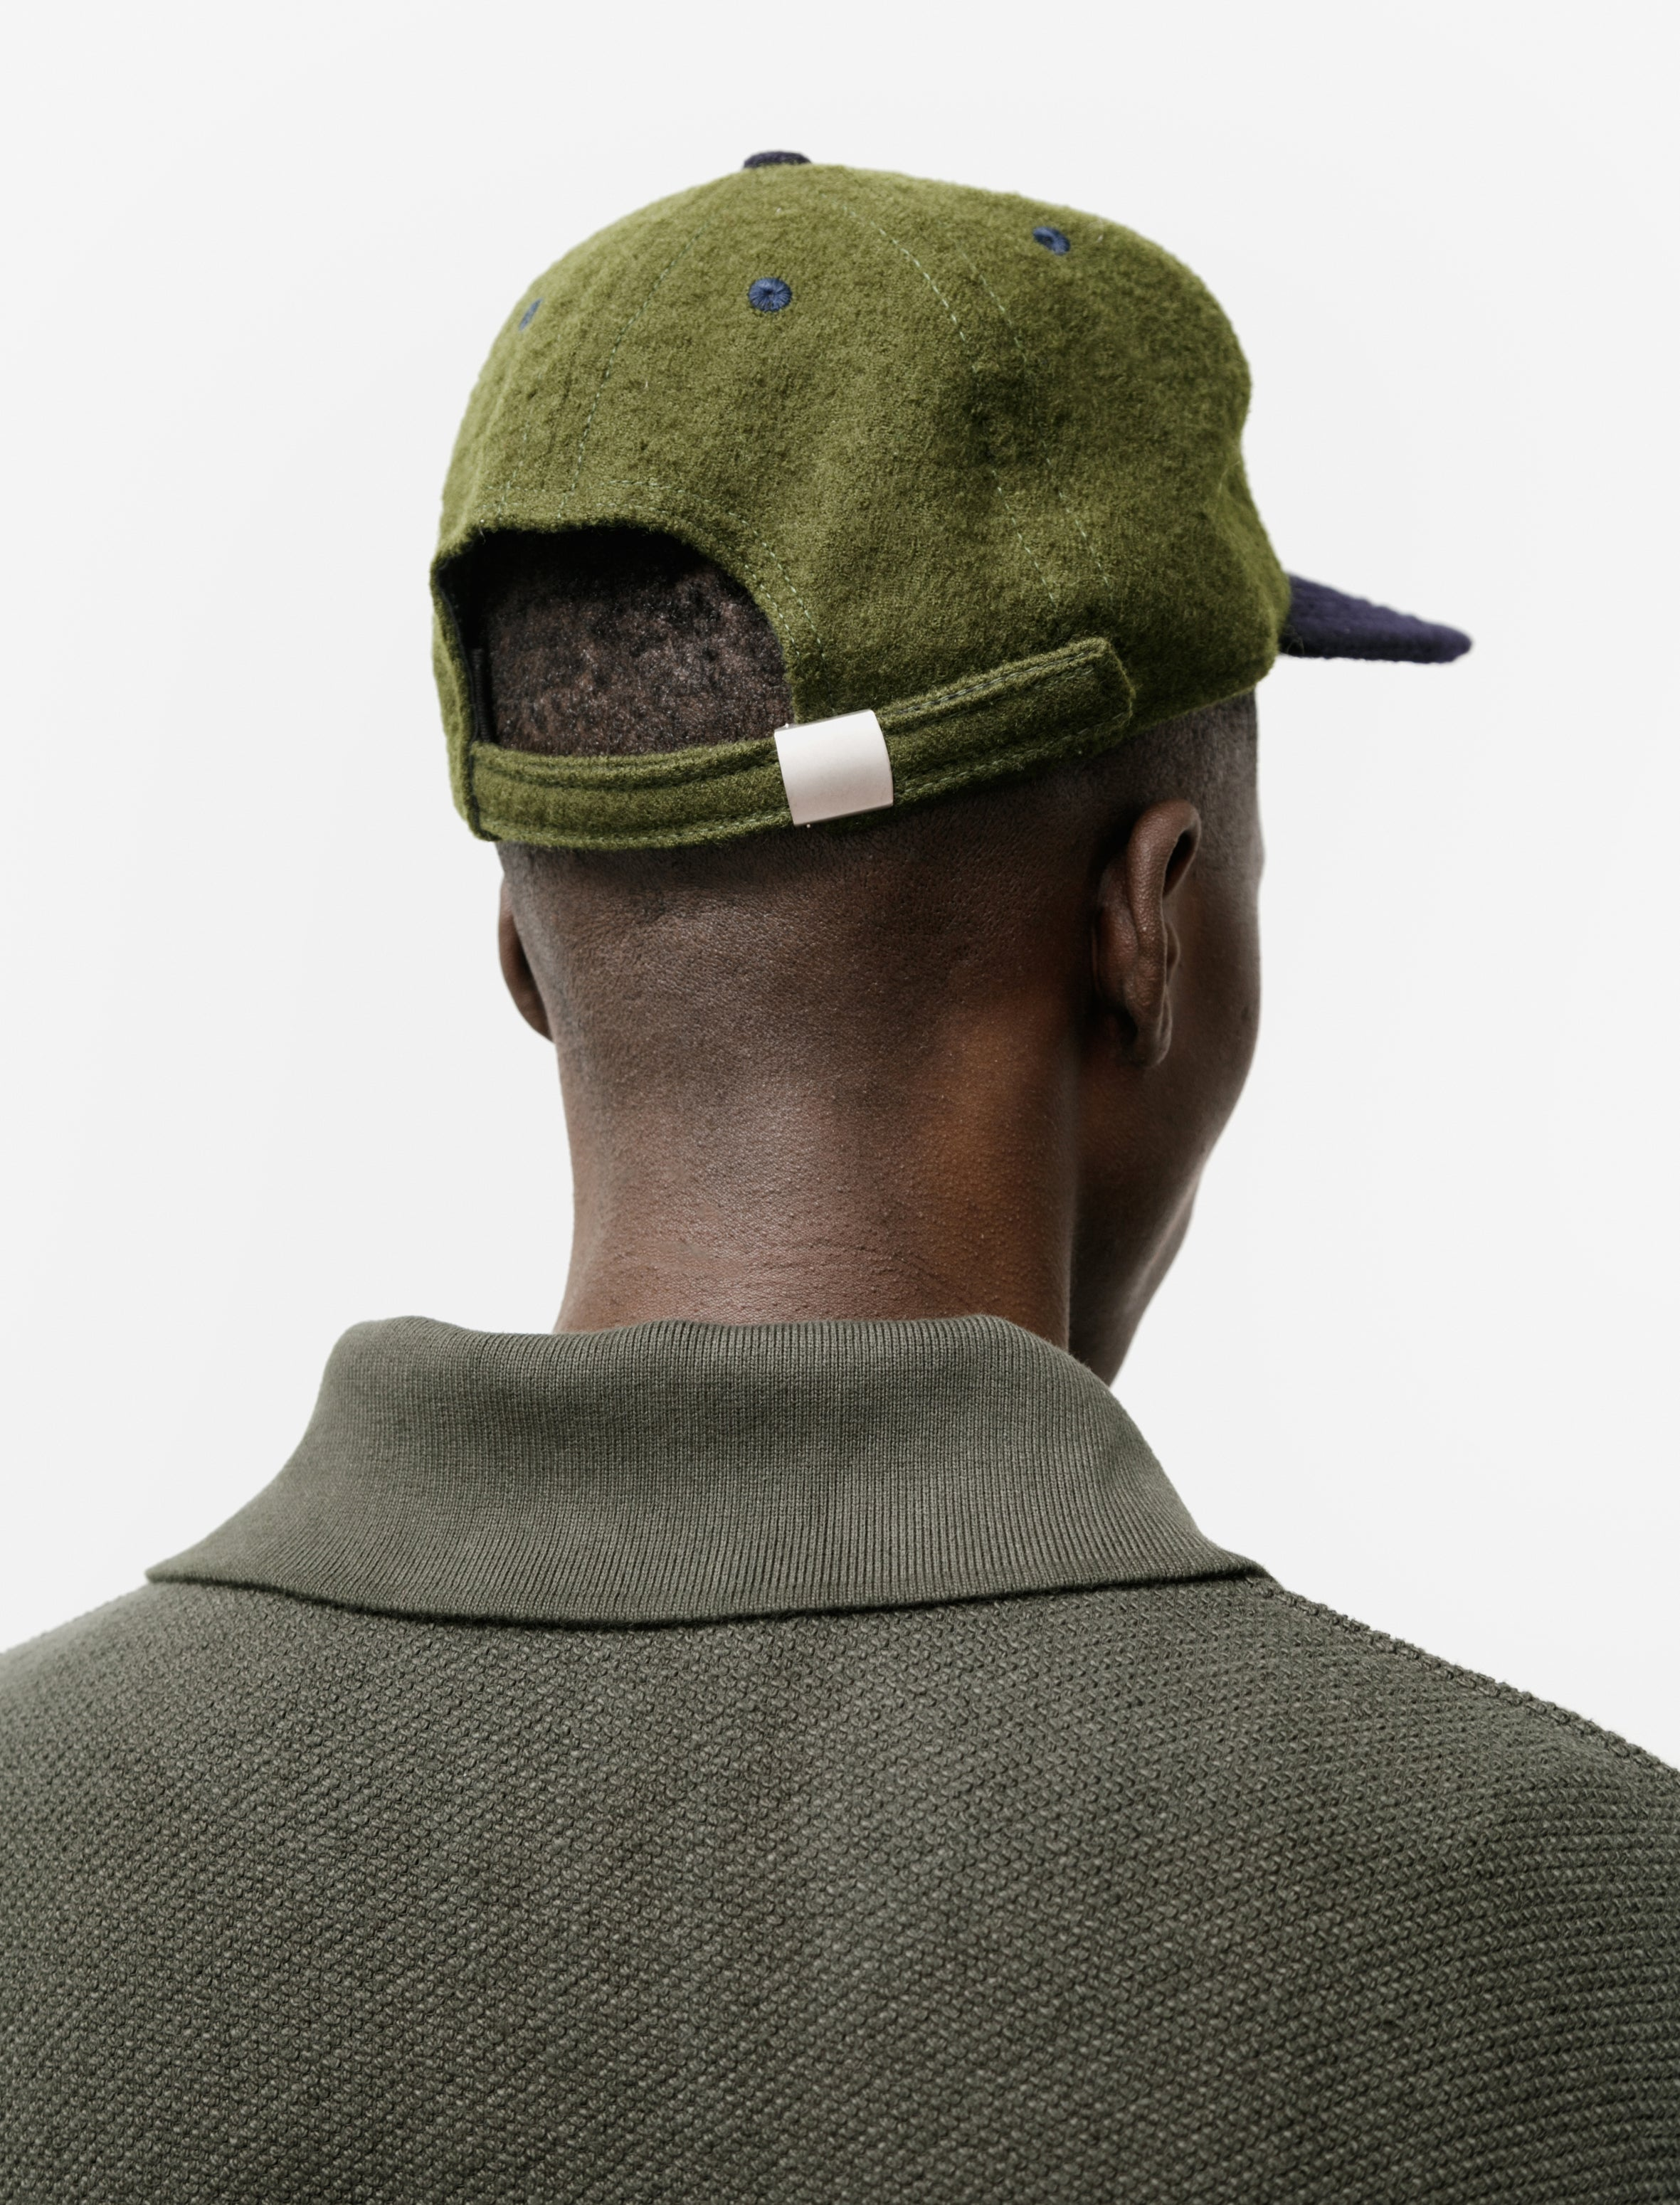 Paa Floppy Ball Cap Green Navy